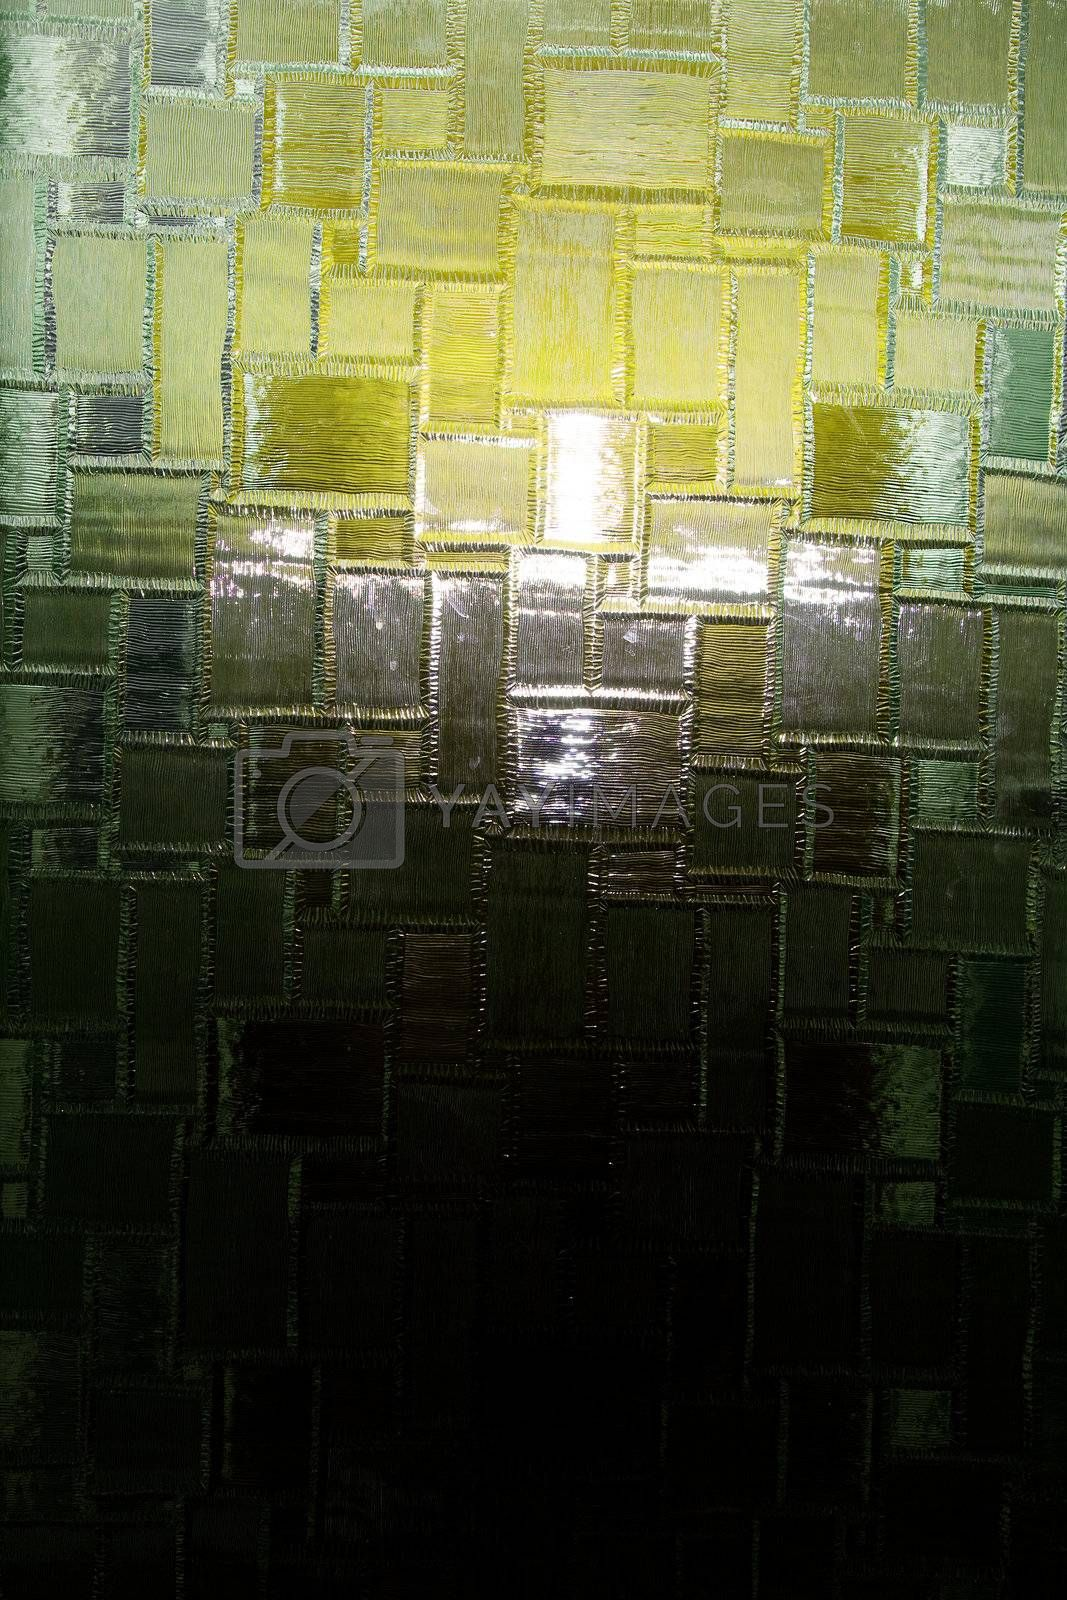 Glass window texture - a hatched pattern